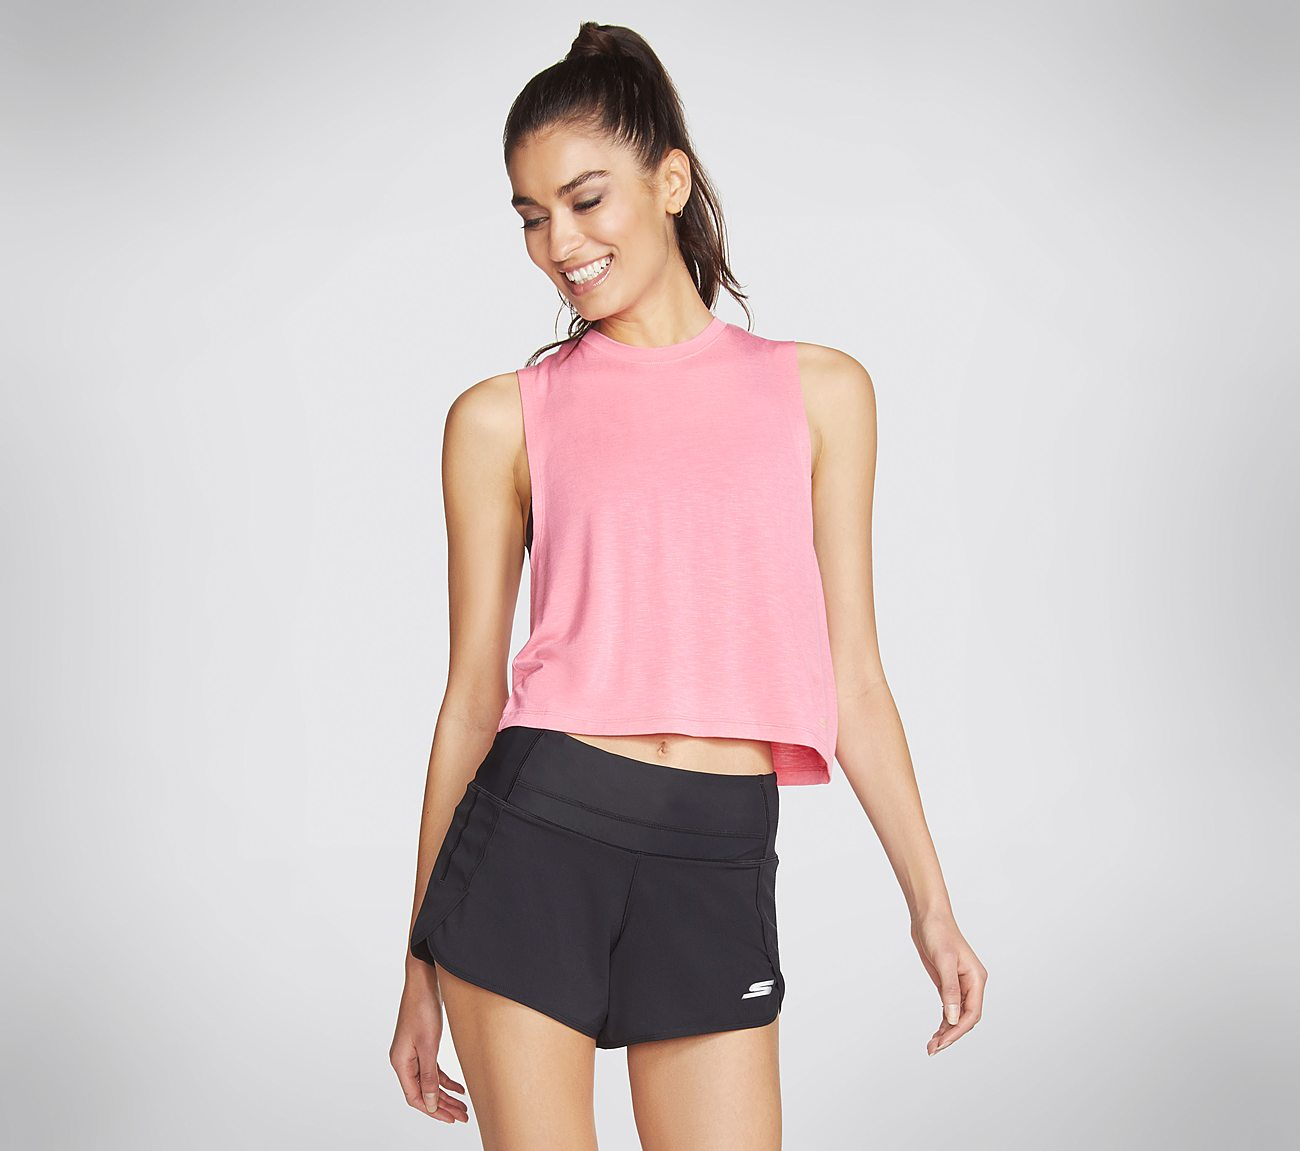 Skechers Apparel Sunkissed Tank Top